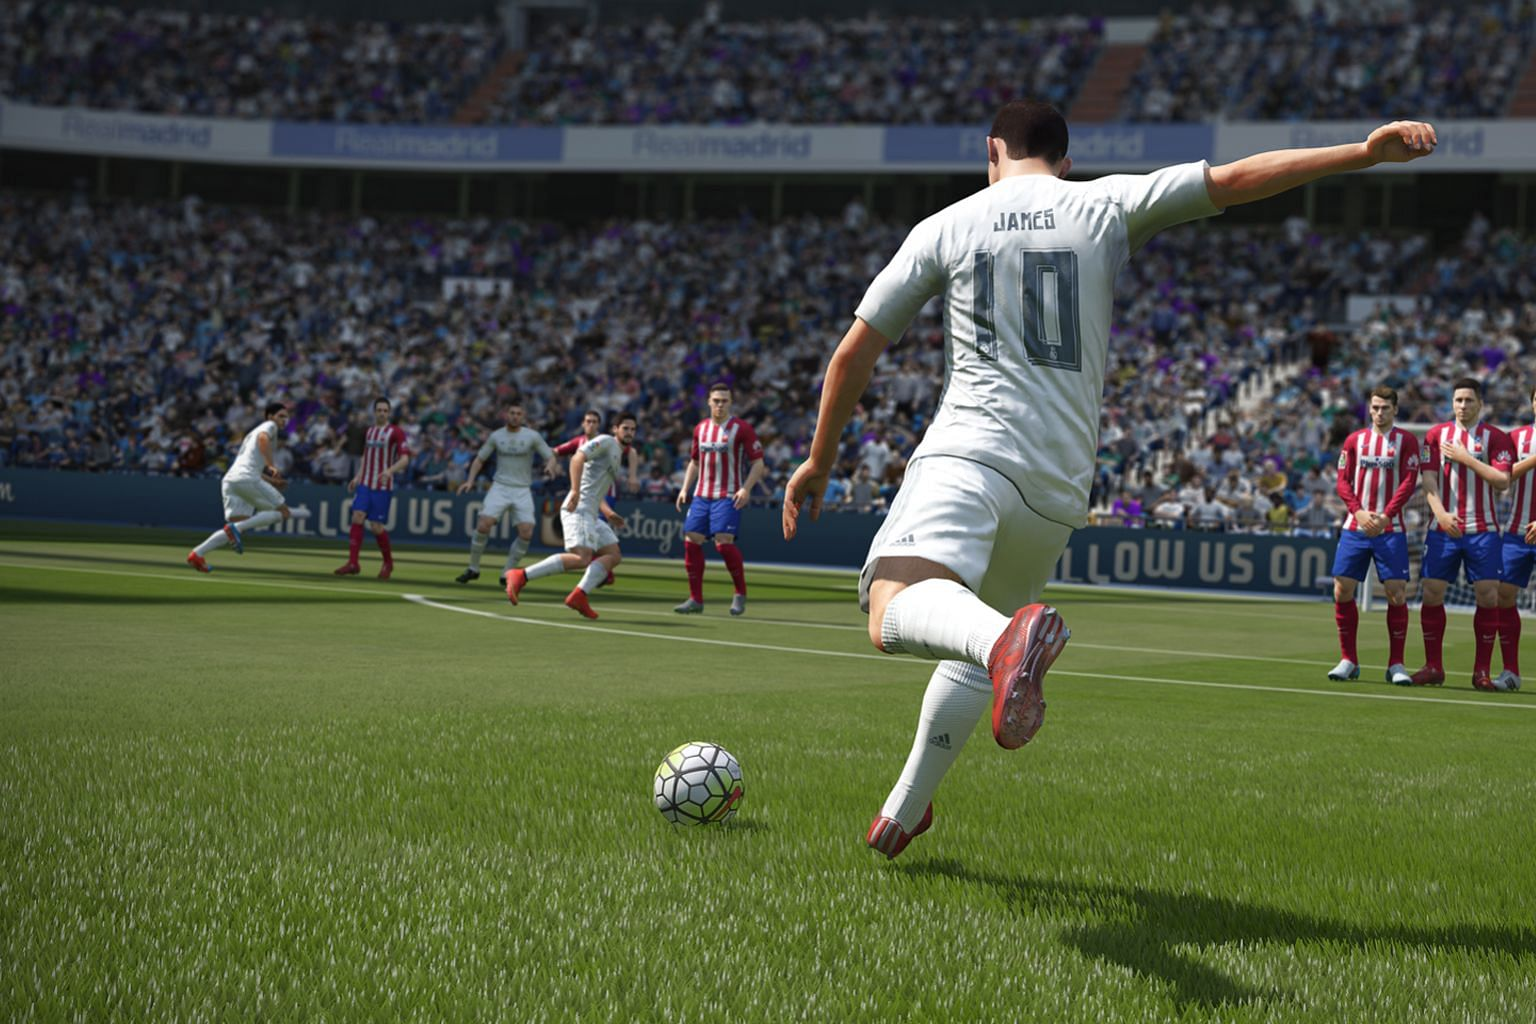 The latest iteration of the Fifa football series remains as delightful as before, with all the players' faces and the teams' jerseys faithfully reproduced down to the finest detail, such as hairstyles and facial hair. Teams and players are really wha